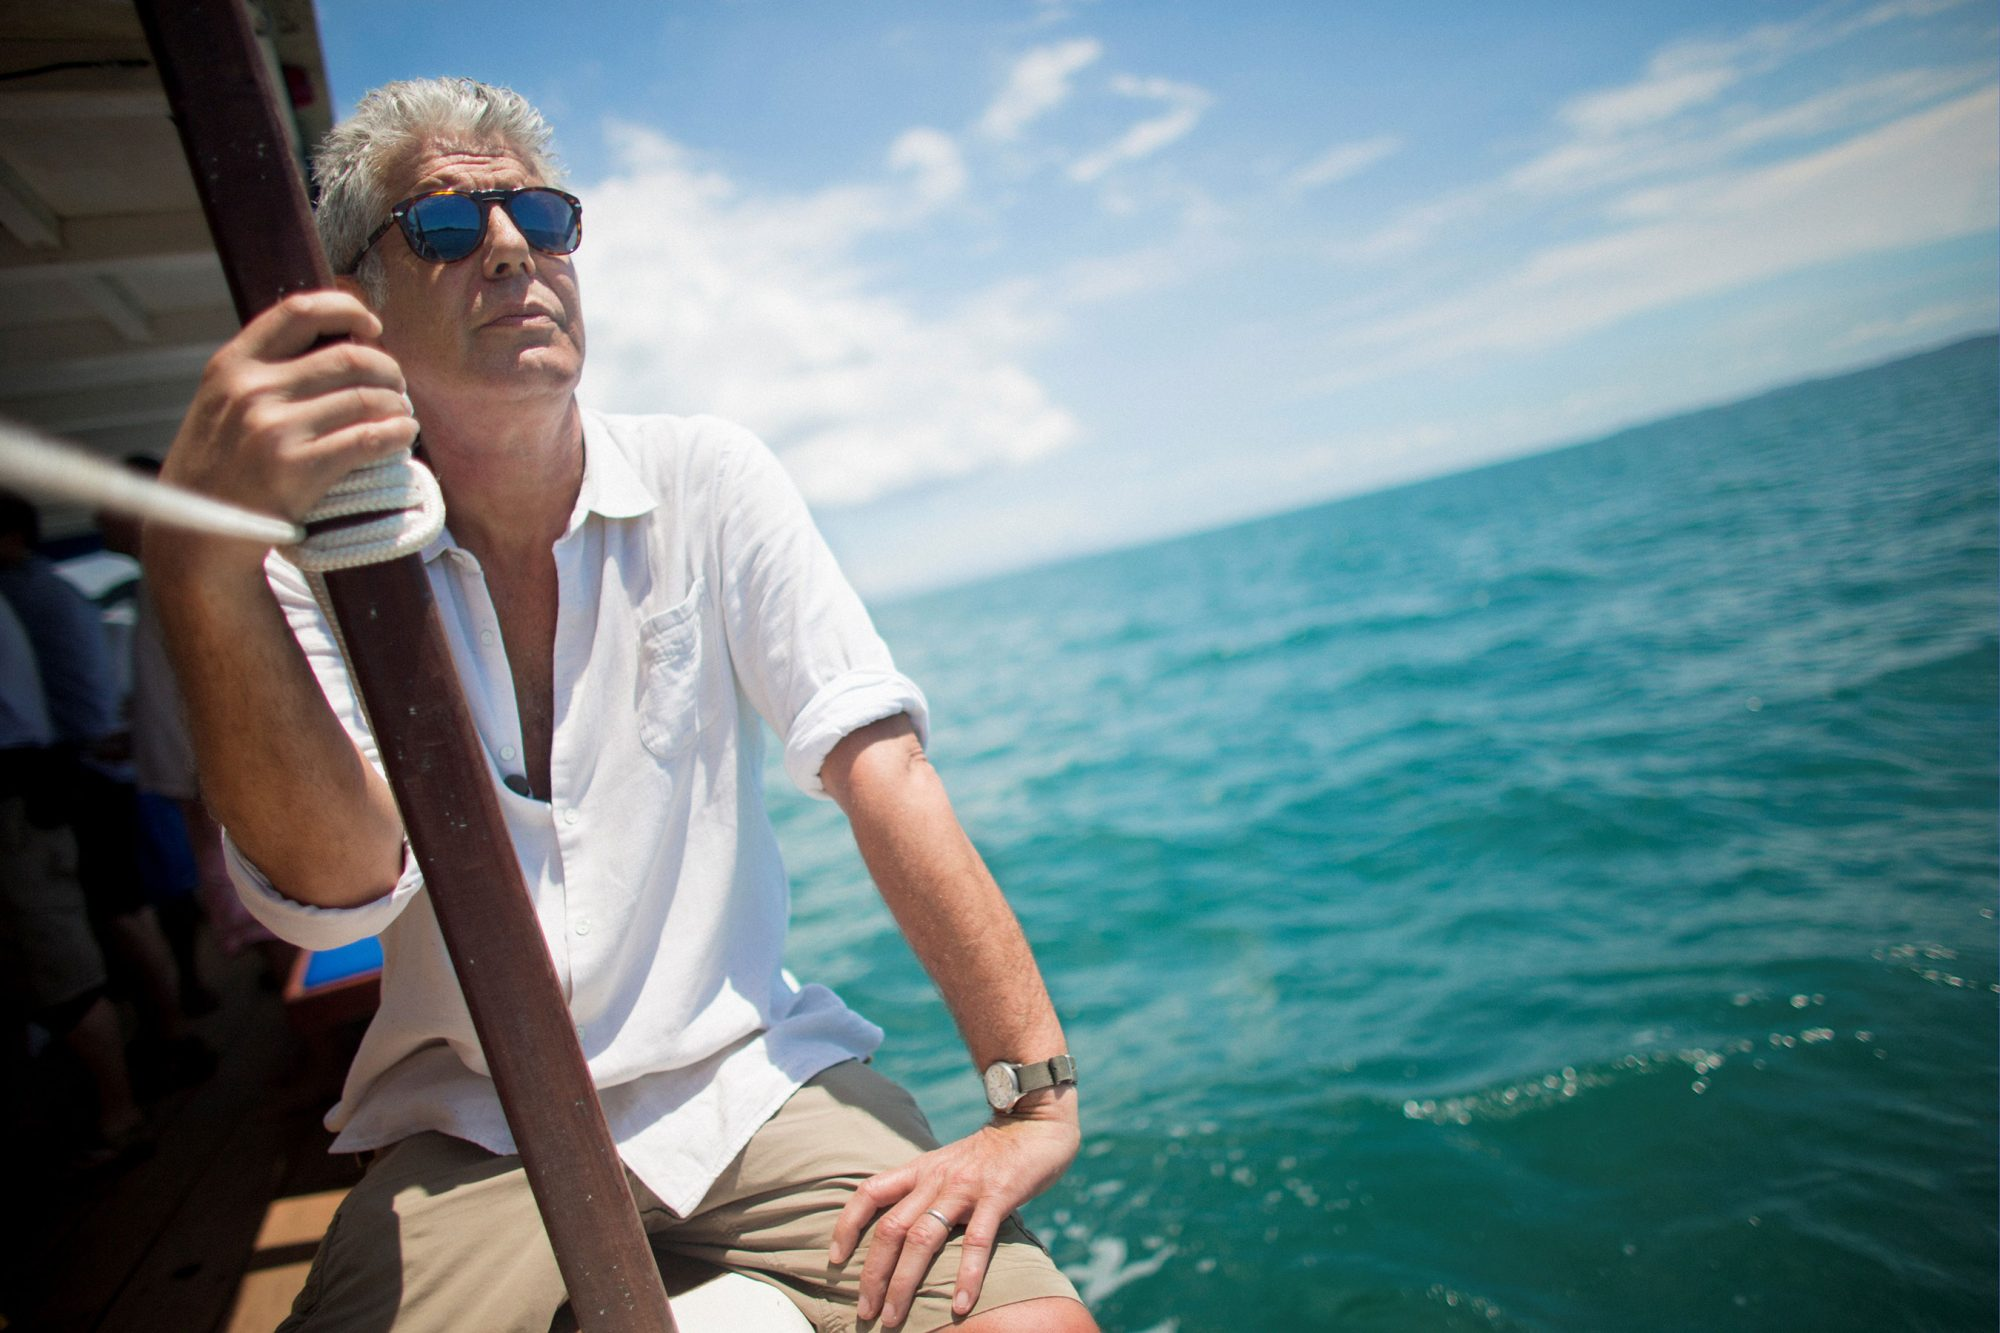 Anthony Bourdain shooting 'Anthony Bourdain Parts Unknown' on lo